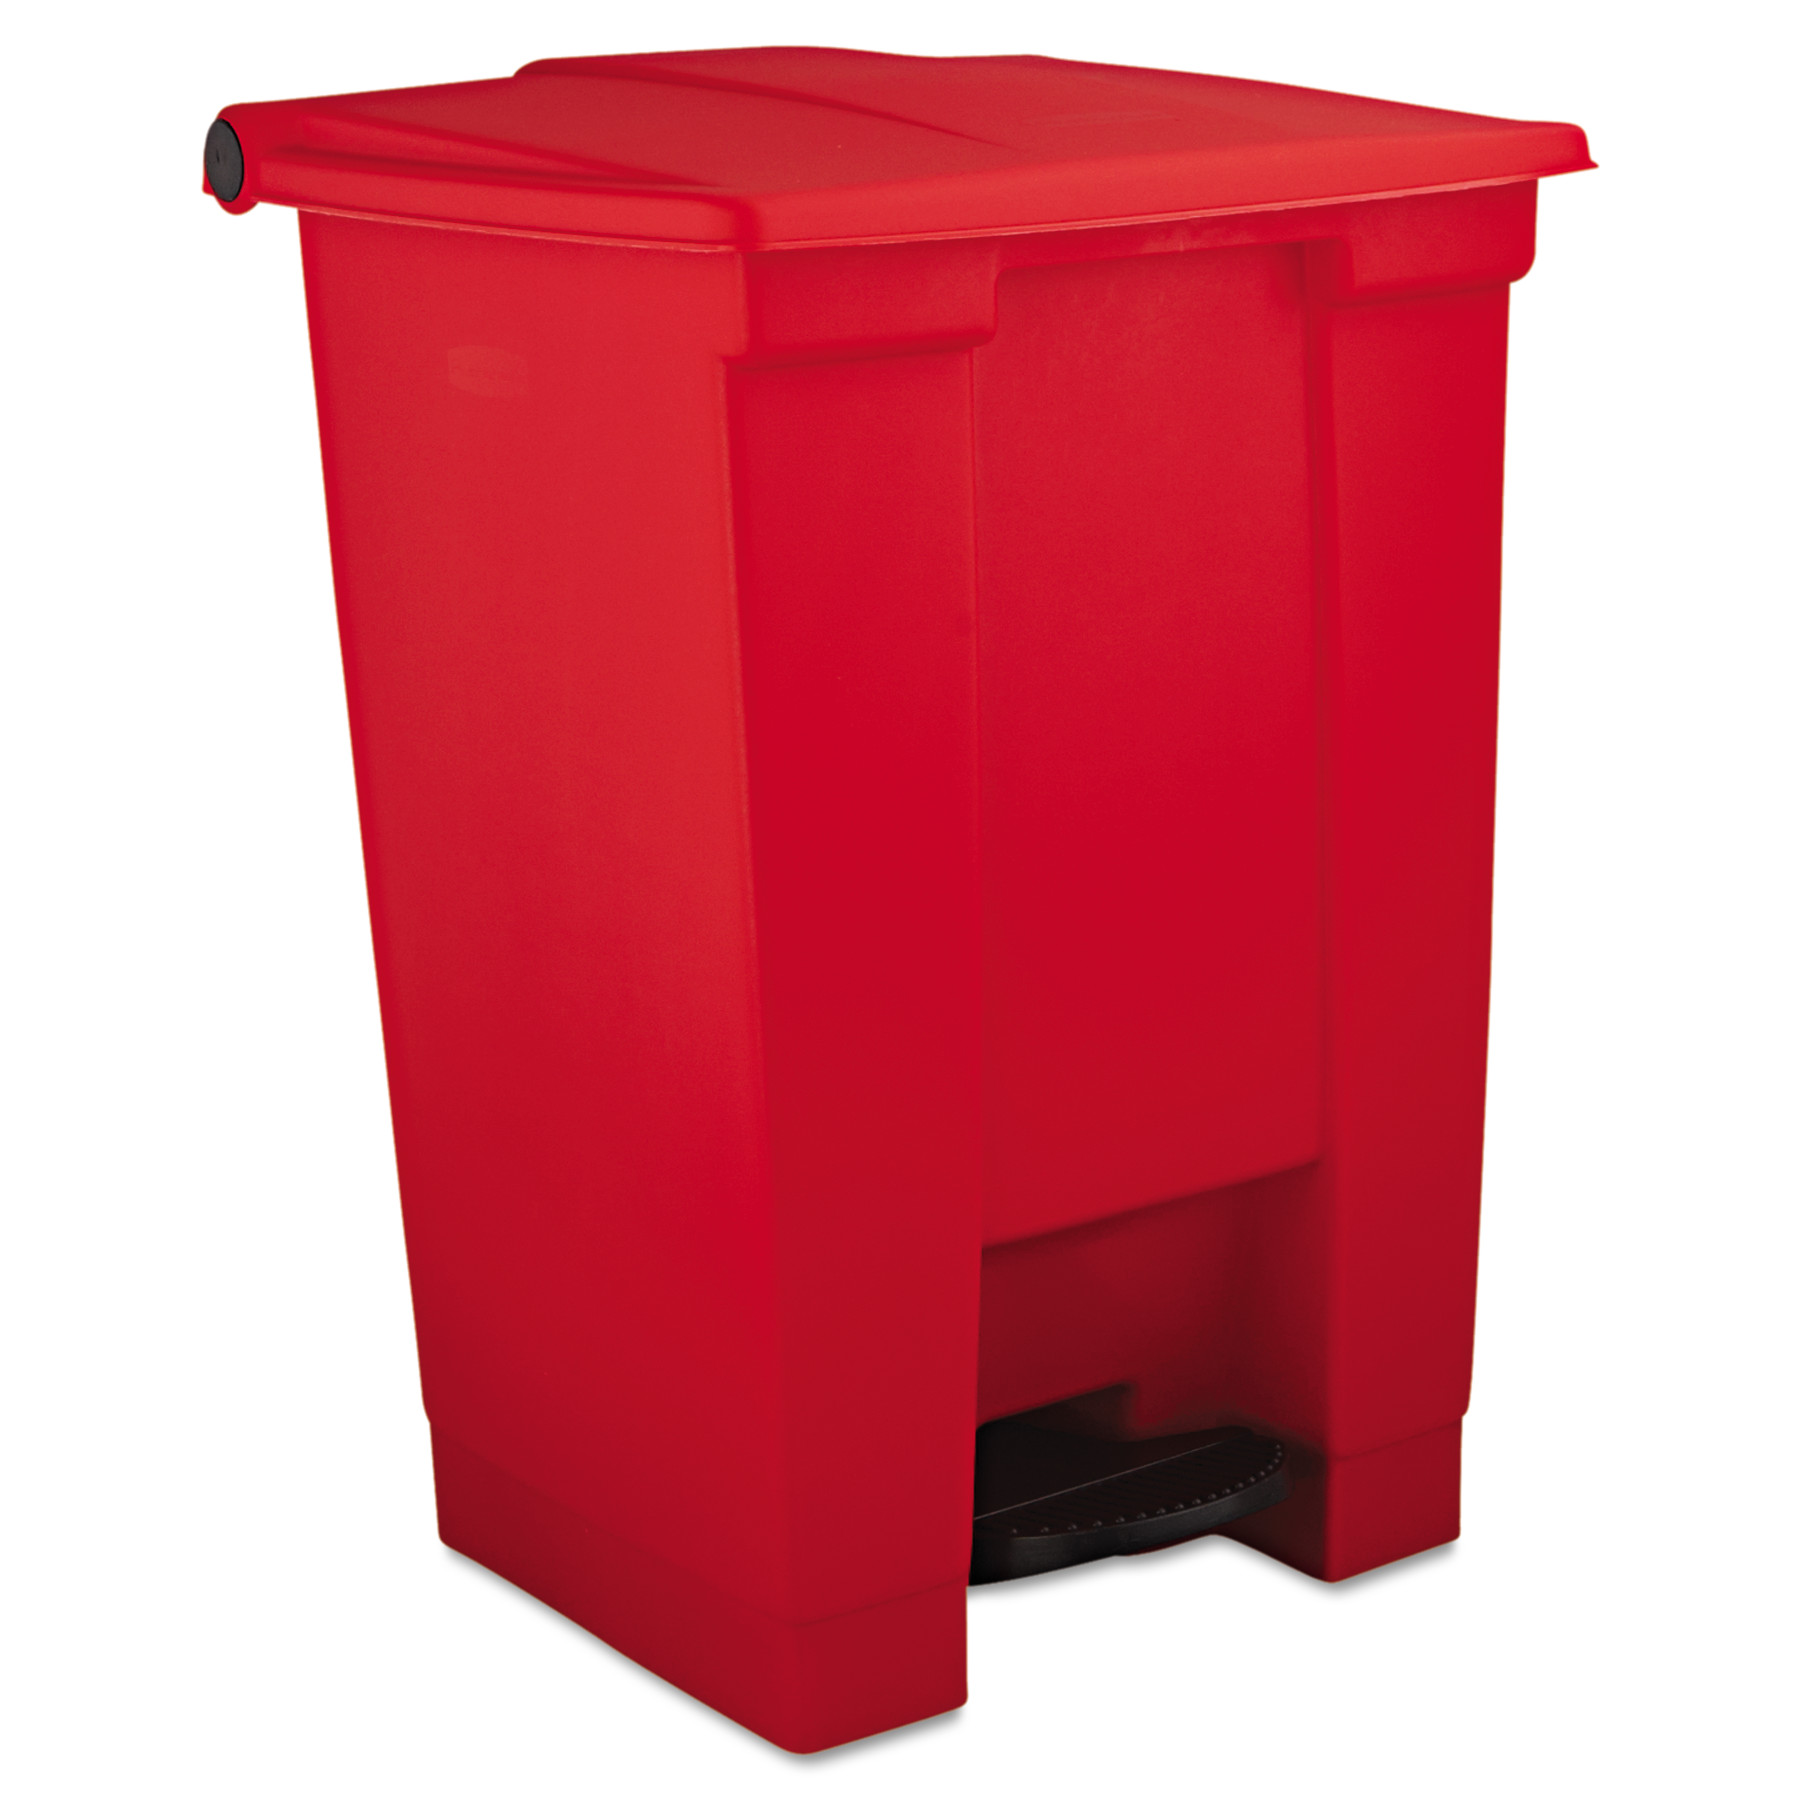 Rubbermaid Commercial Indoor Utility Step-On Waste Container, Square, Plastic, 12gal, Red